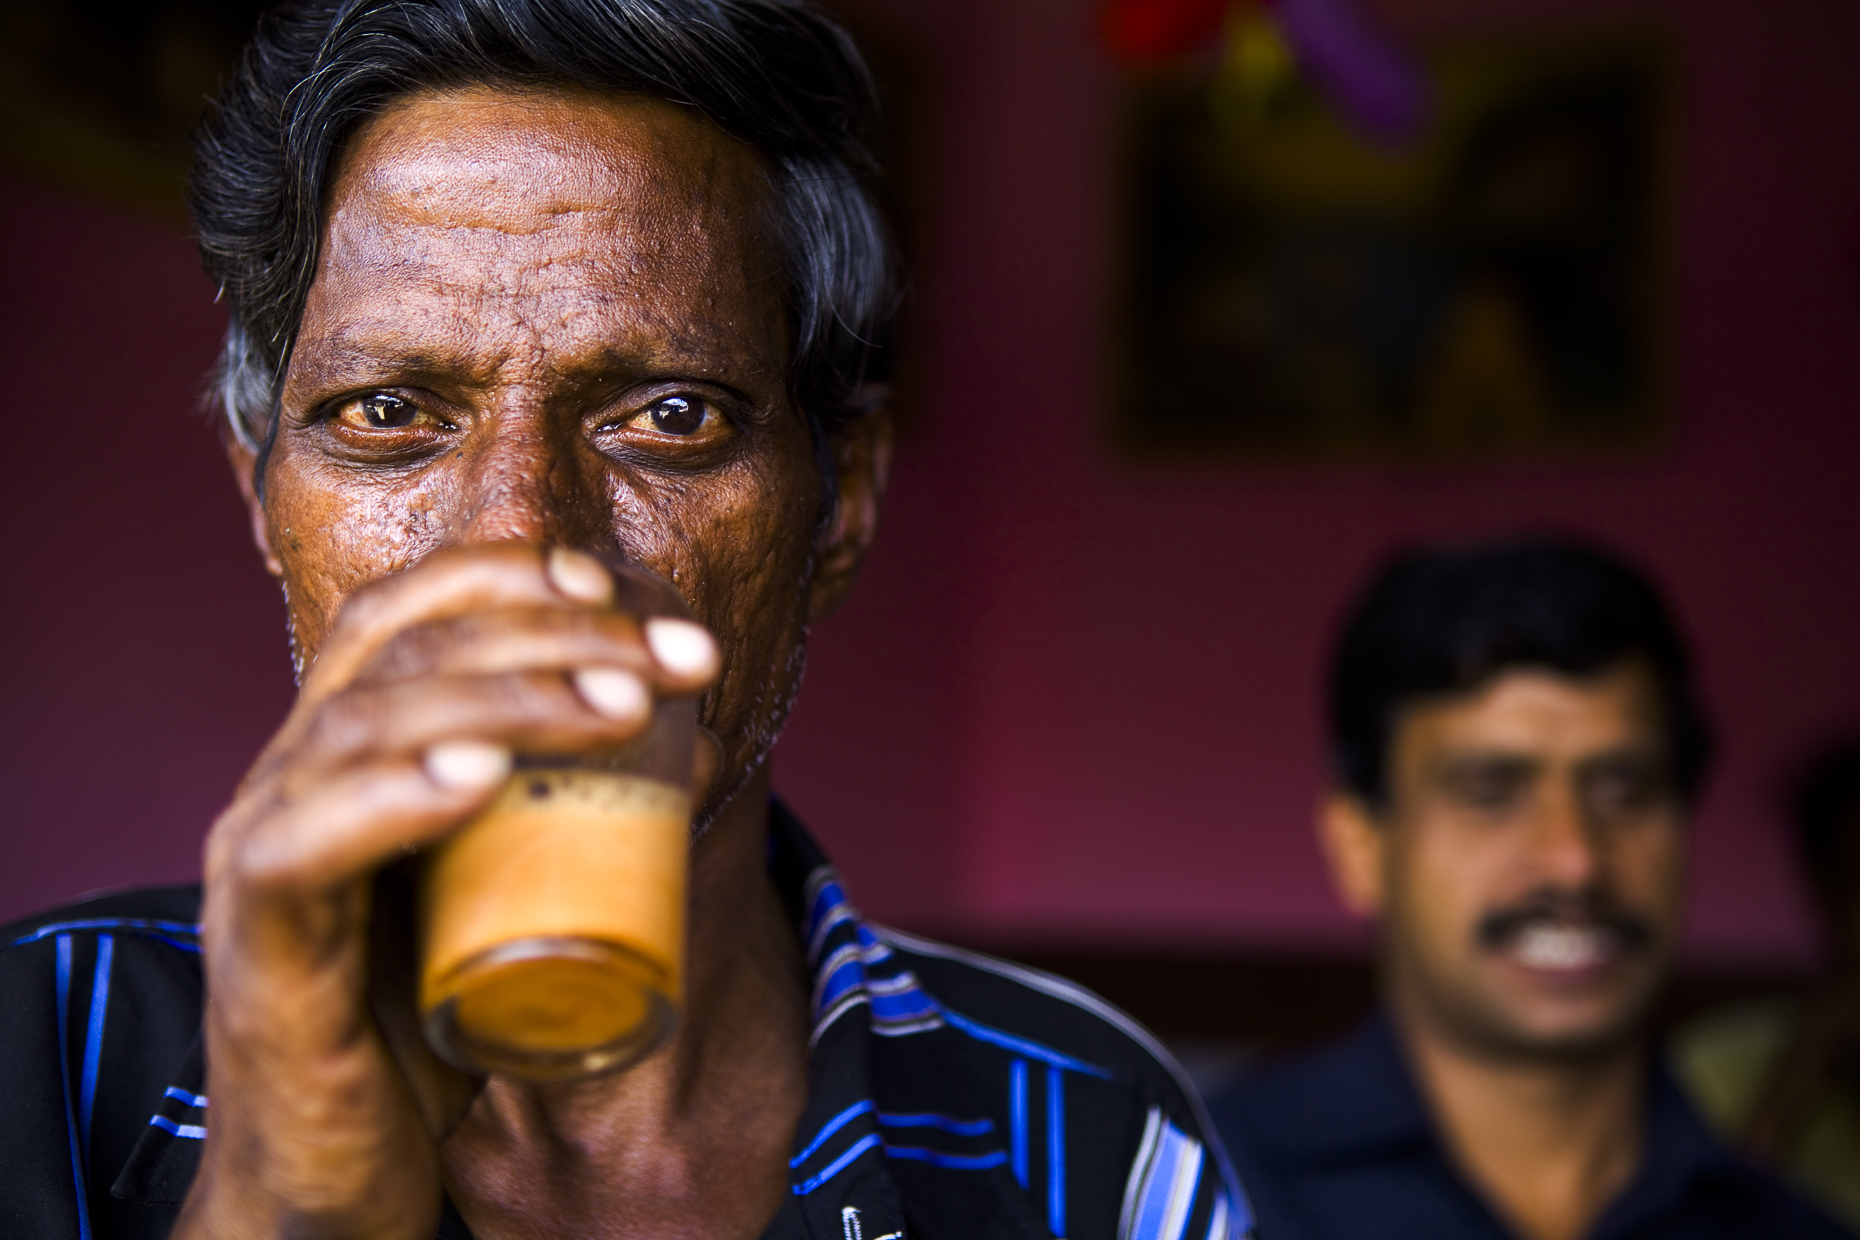 Man in tea shop, Coonoor, India